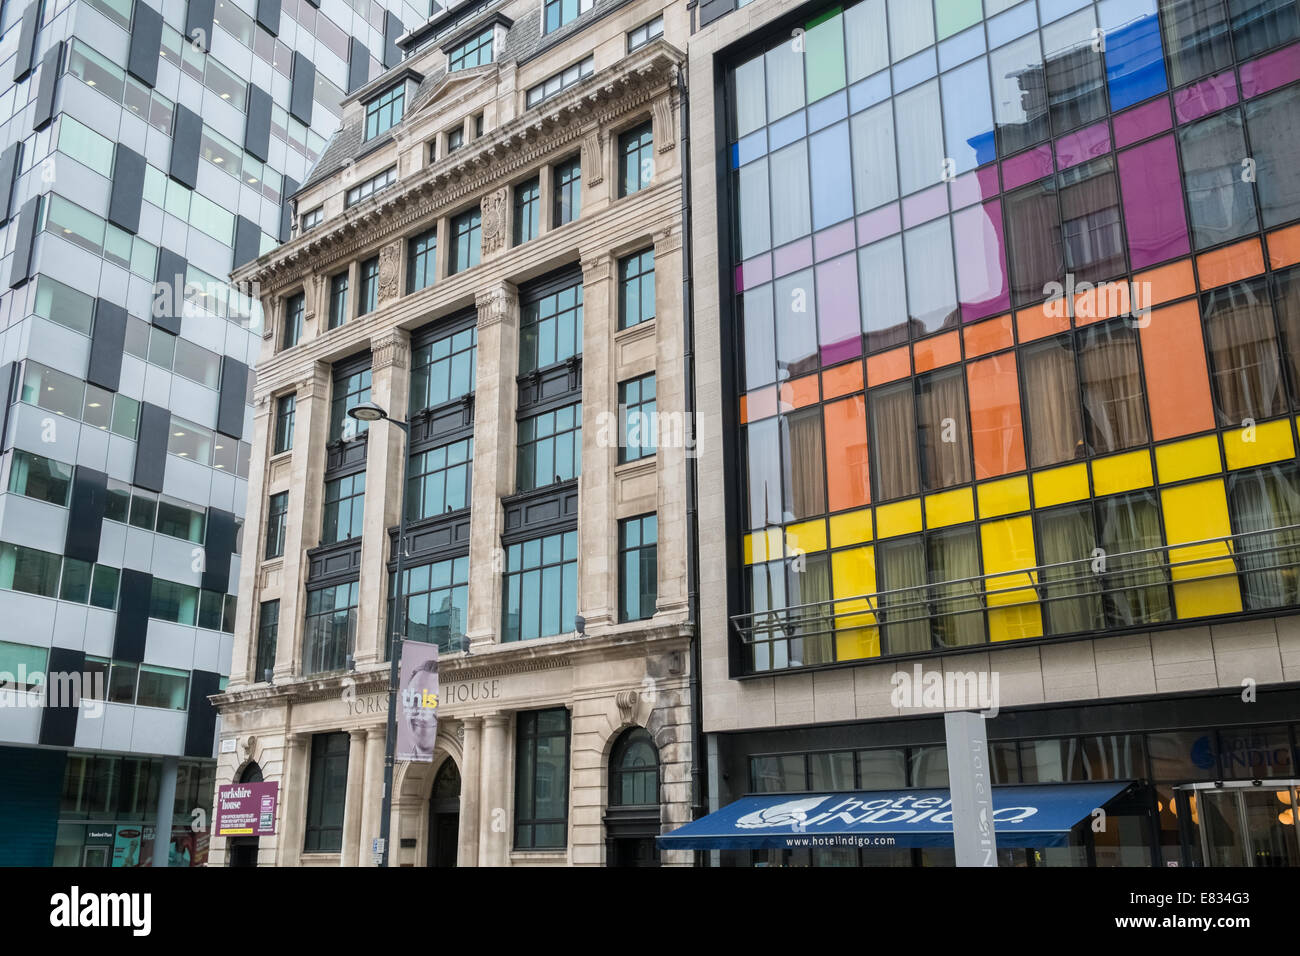 Examples of modern and traditional architecture, Chapel Street, Liverpool, Merseyside, England UK Stock Photo